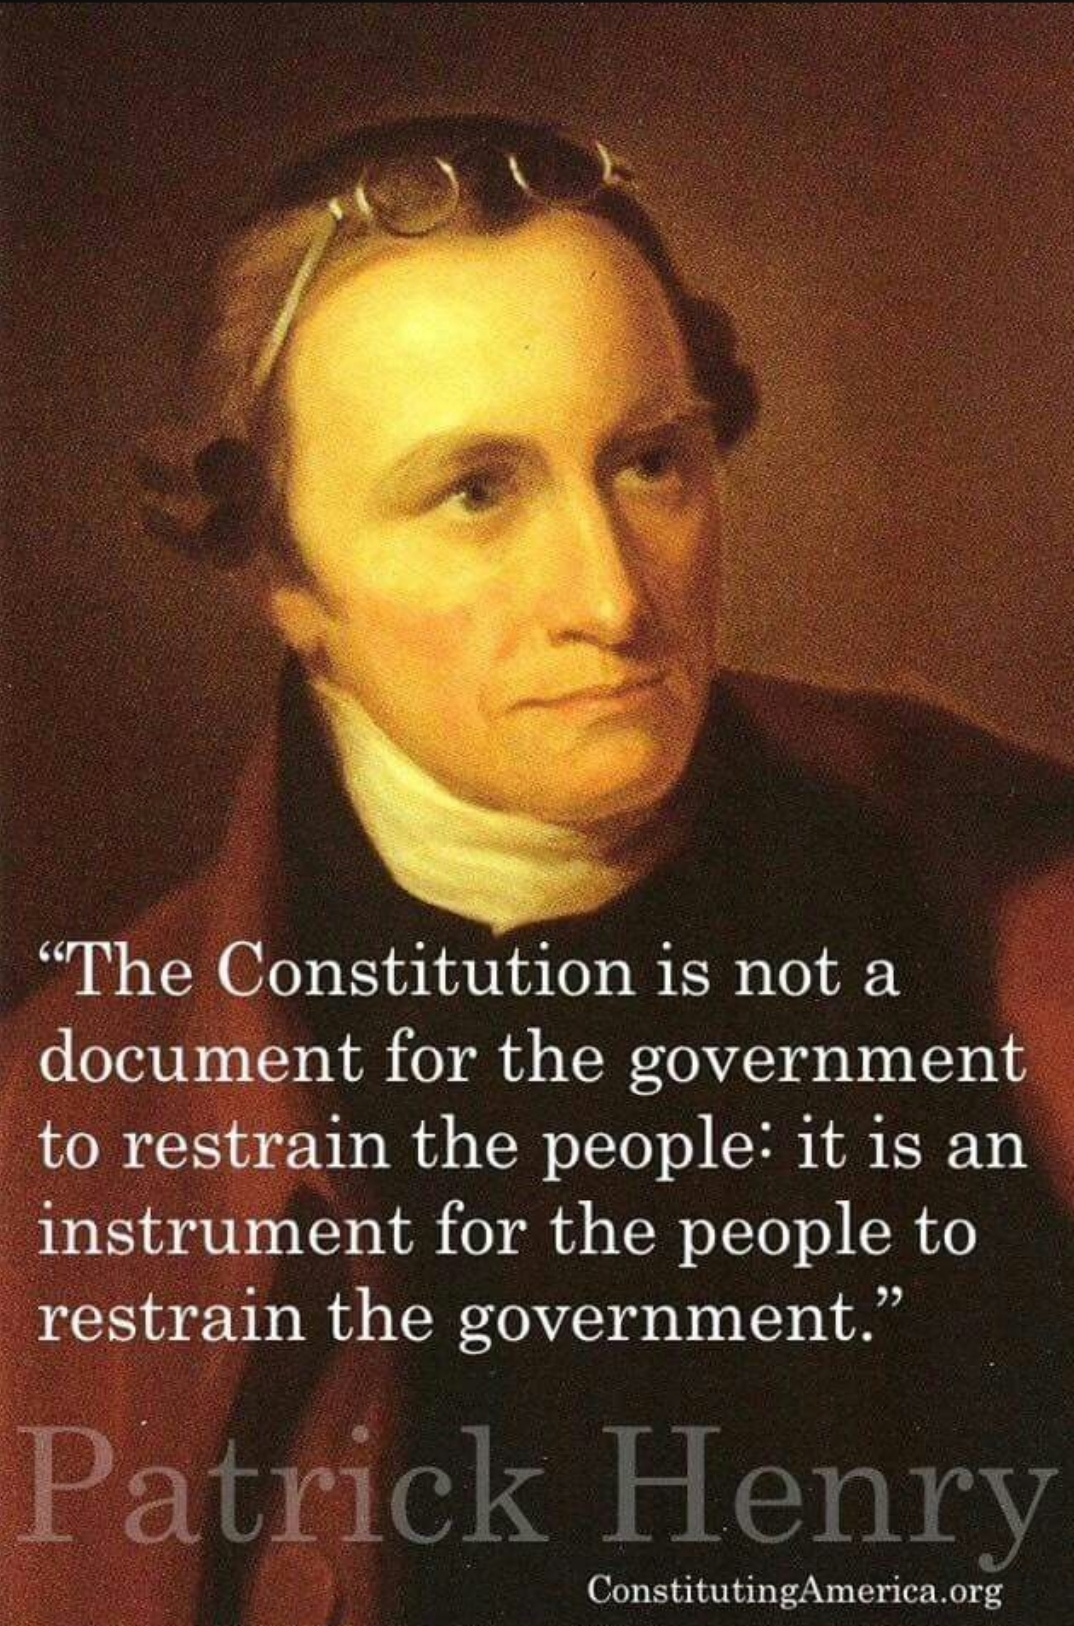 """The constitution is not a document for the government to restrain people: it is an instrument for people to restrain the government."" – Patric Henry [1074×1626]"